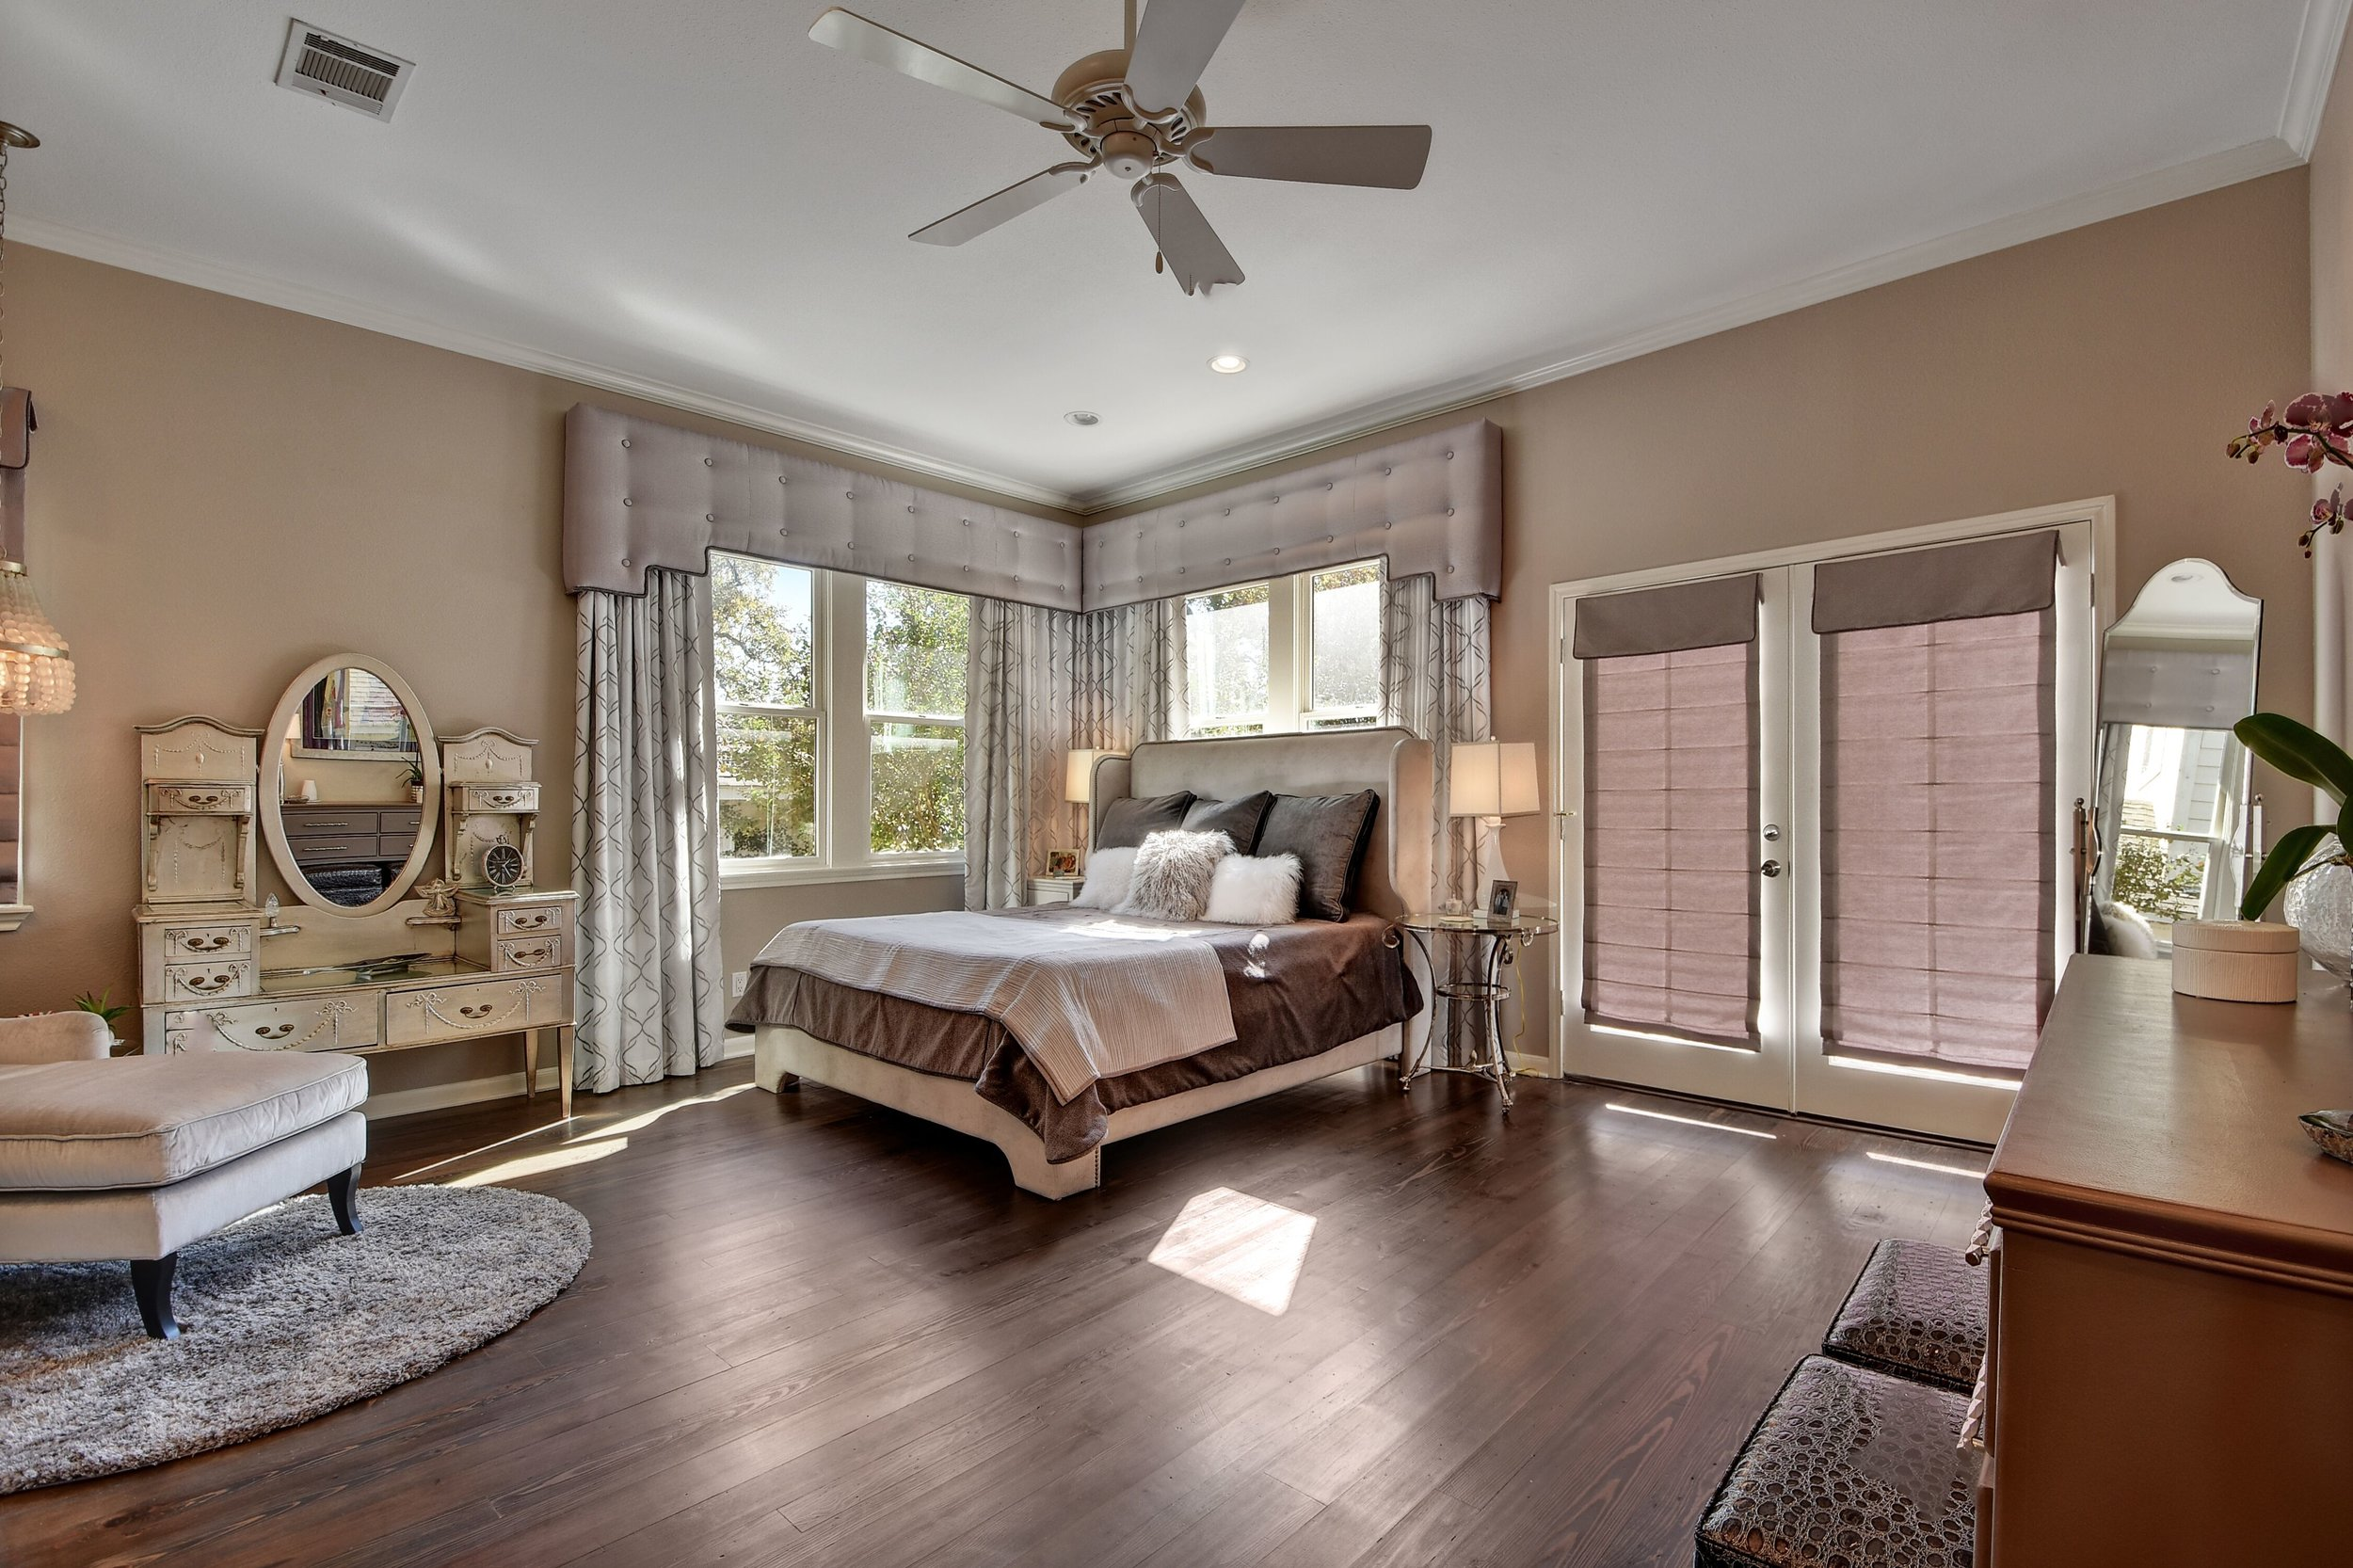 Bedroom Designer Austin Texas